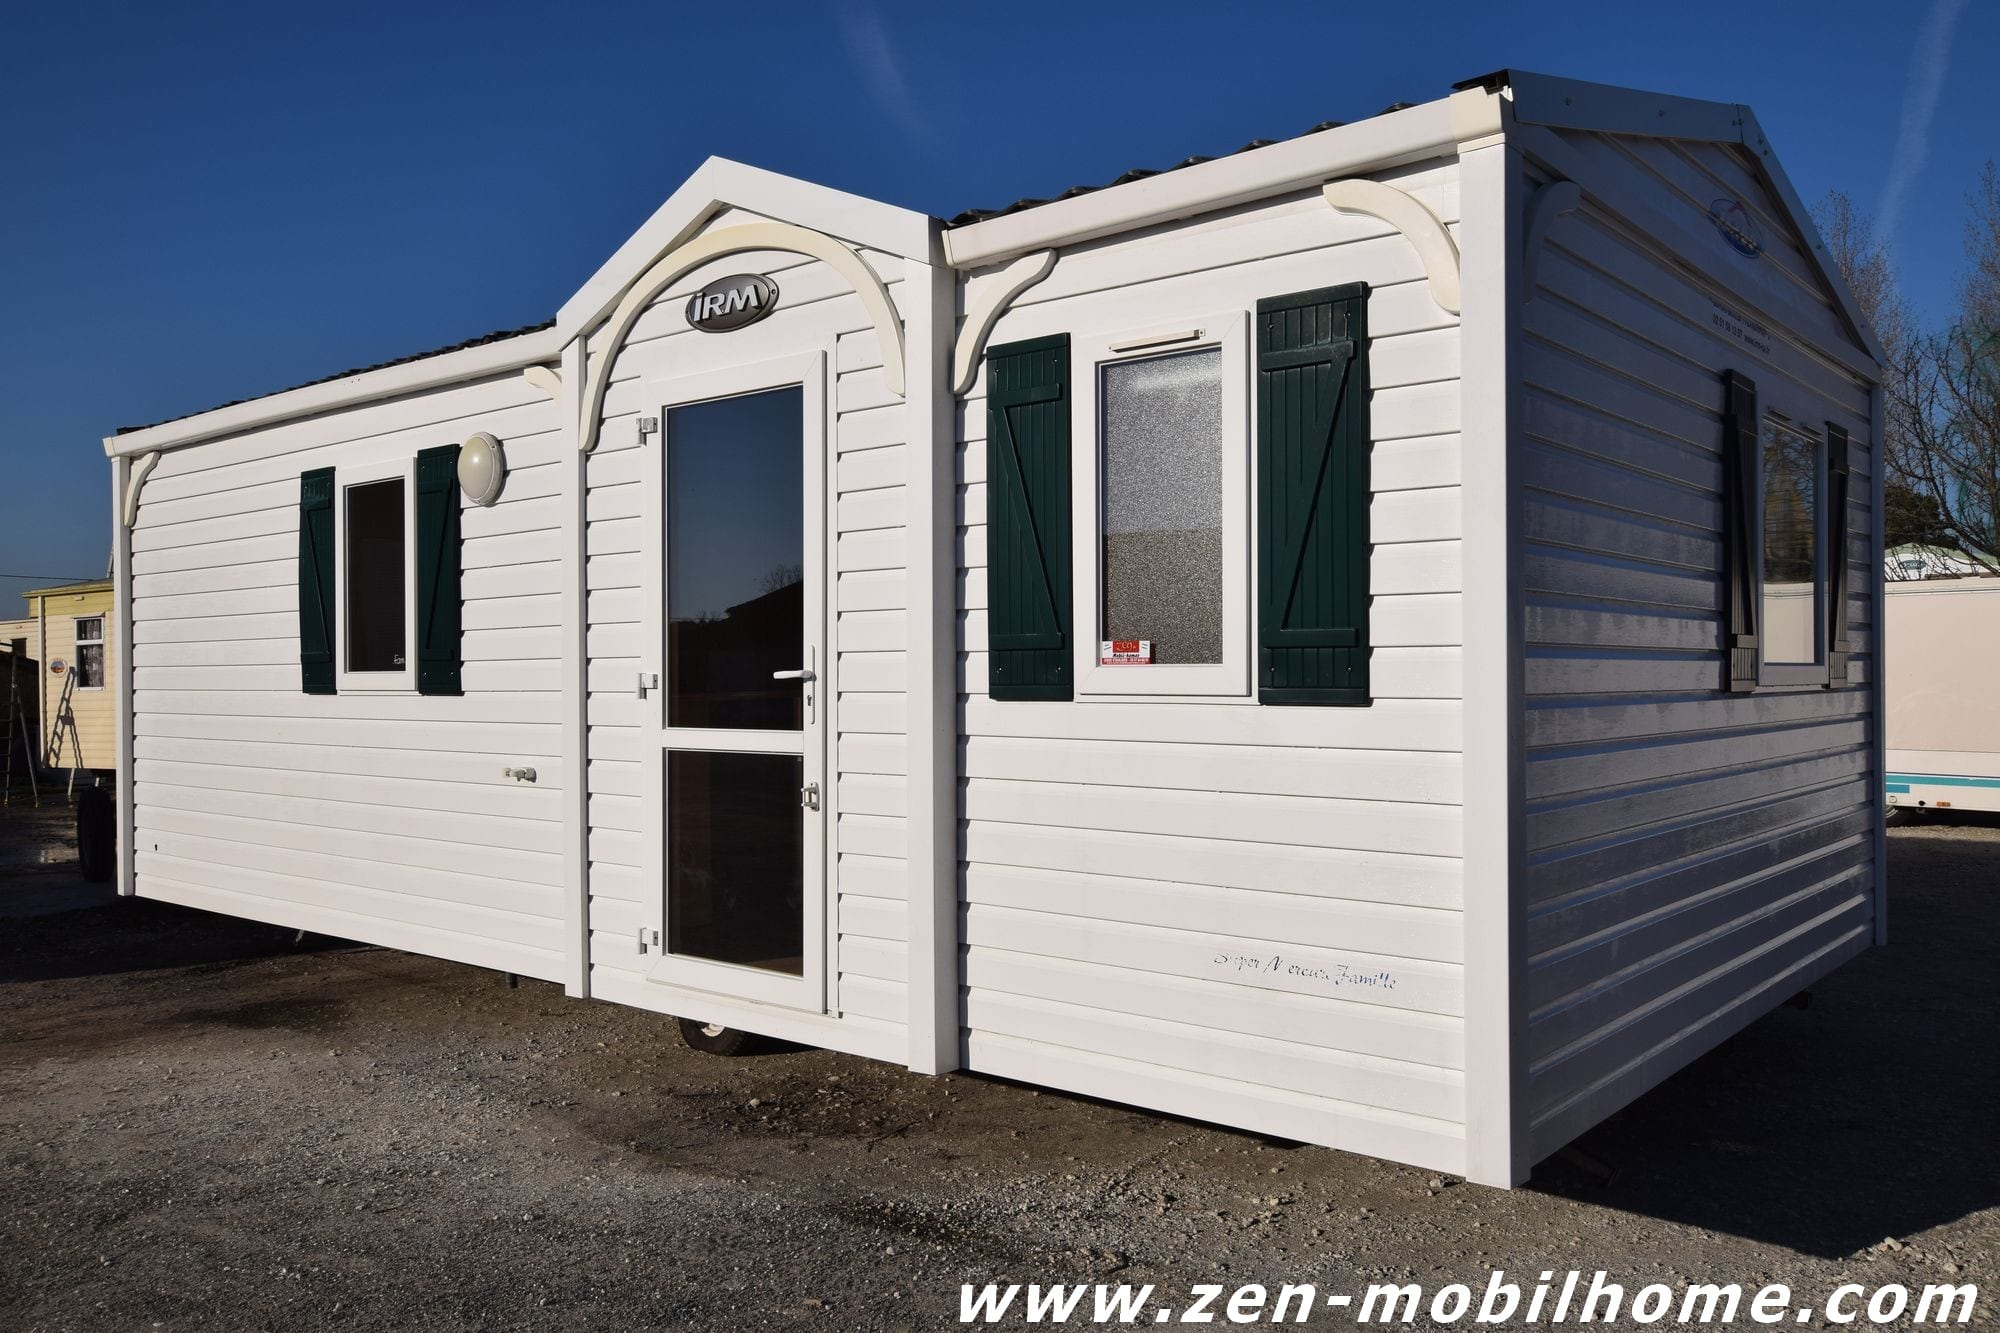 irm super mercure family mobil home d 39 occasion 7 500 zen mobil homes. Black Bedroom Furniture Sets. Home Design Ideas